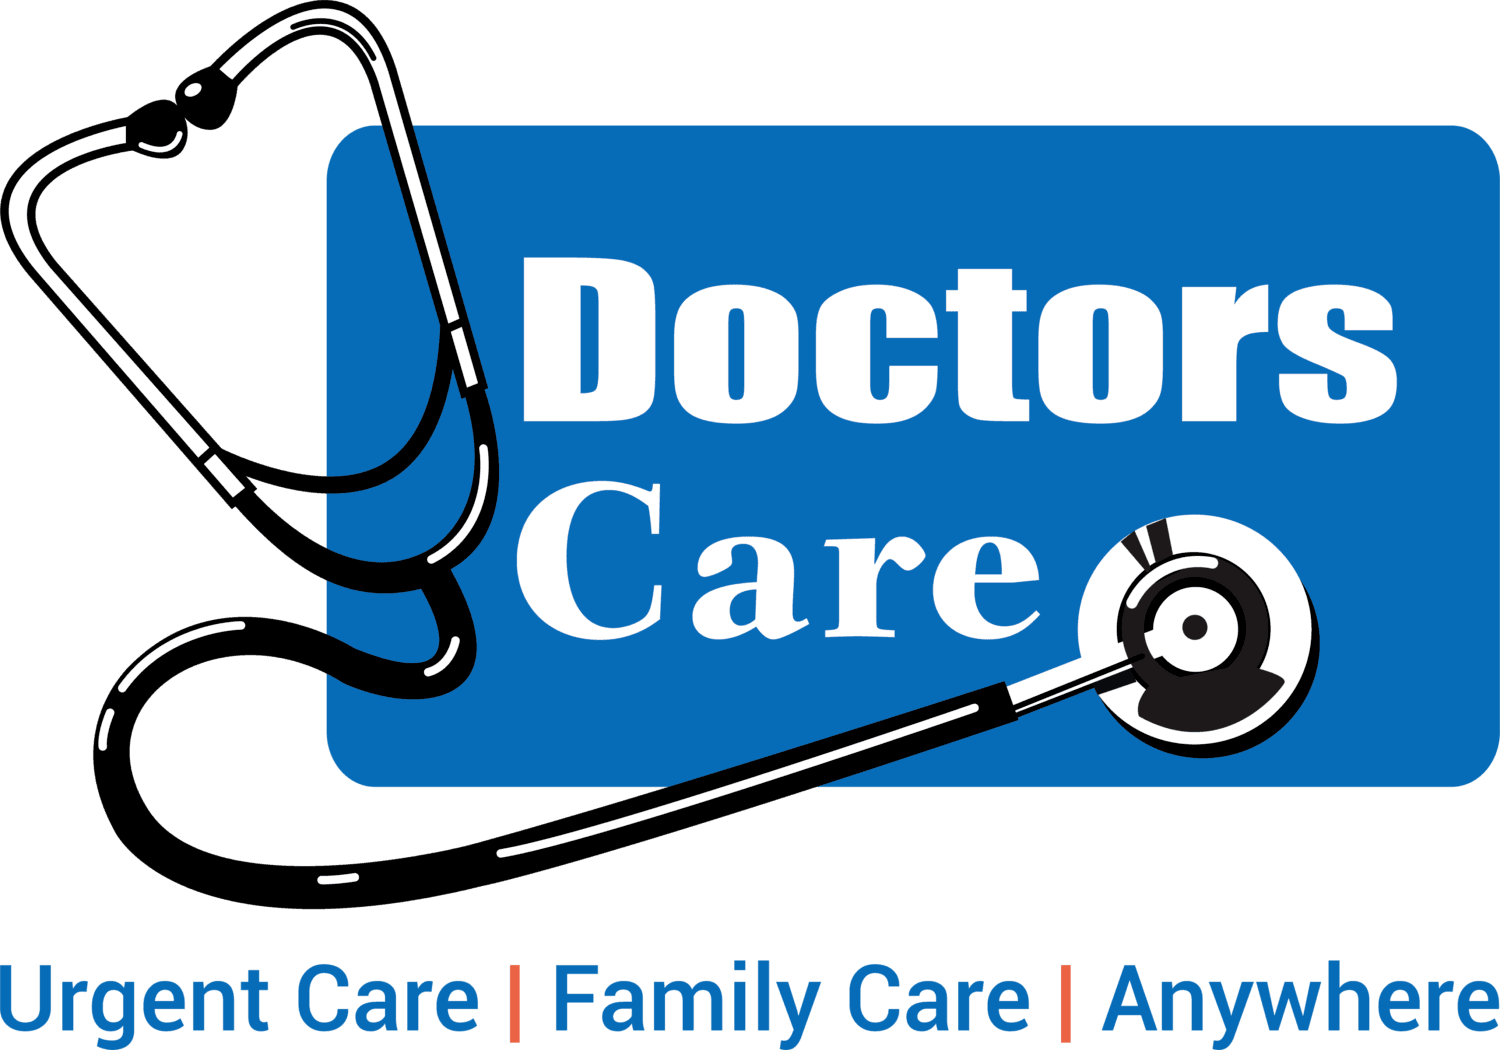 Visit the Doctors Care website